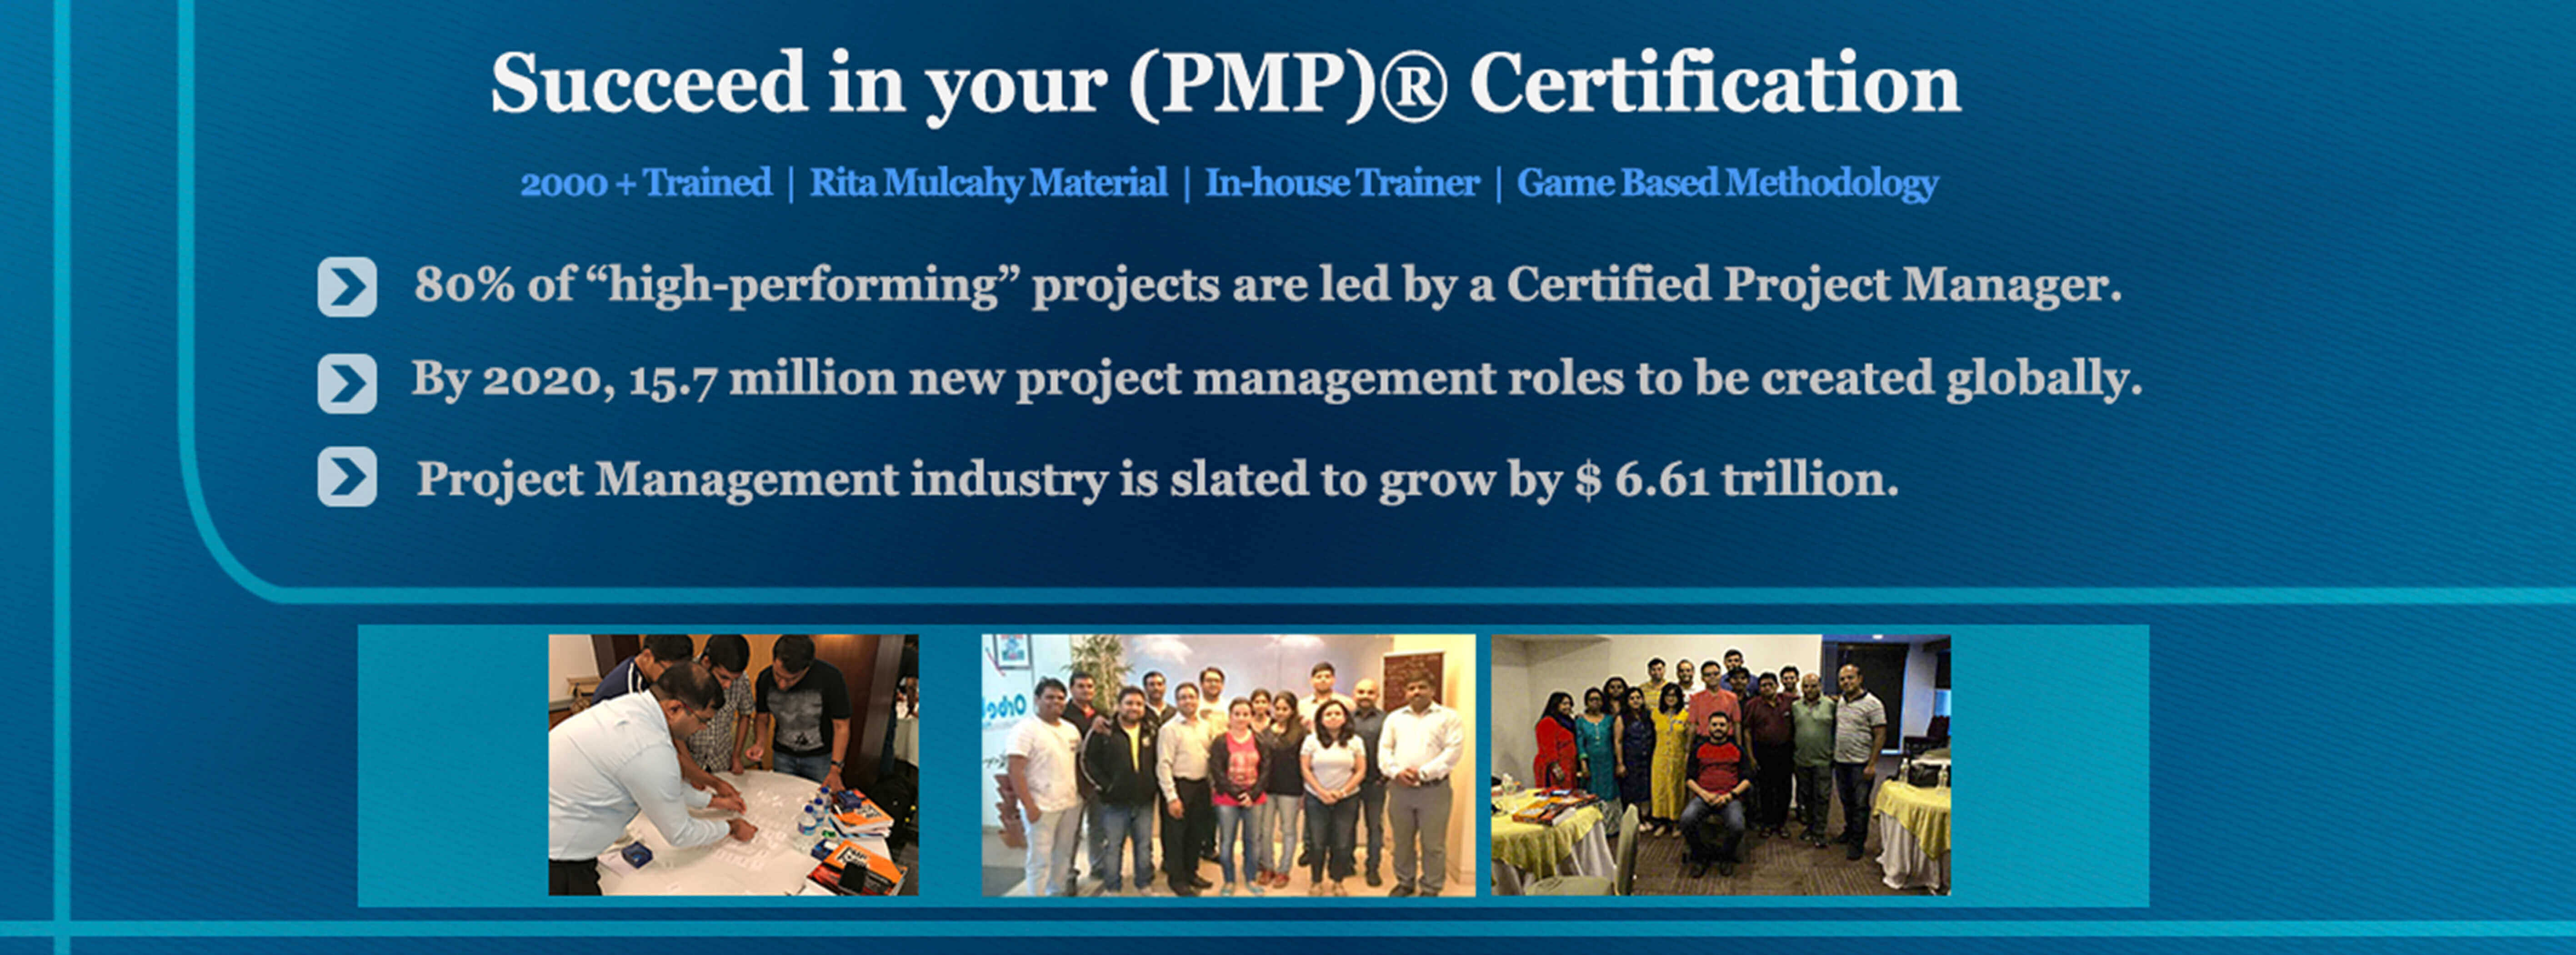 Pmp certification training course in hyderabad prothoughts project management professional pmp certification course in hyderabad 1betcityfo Images